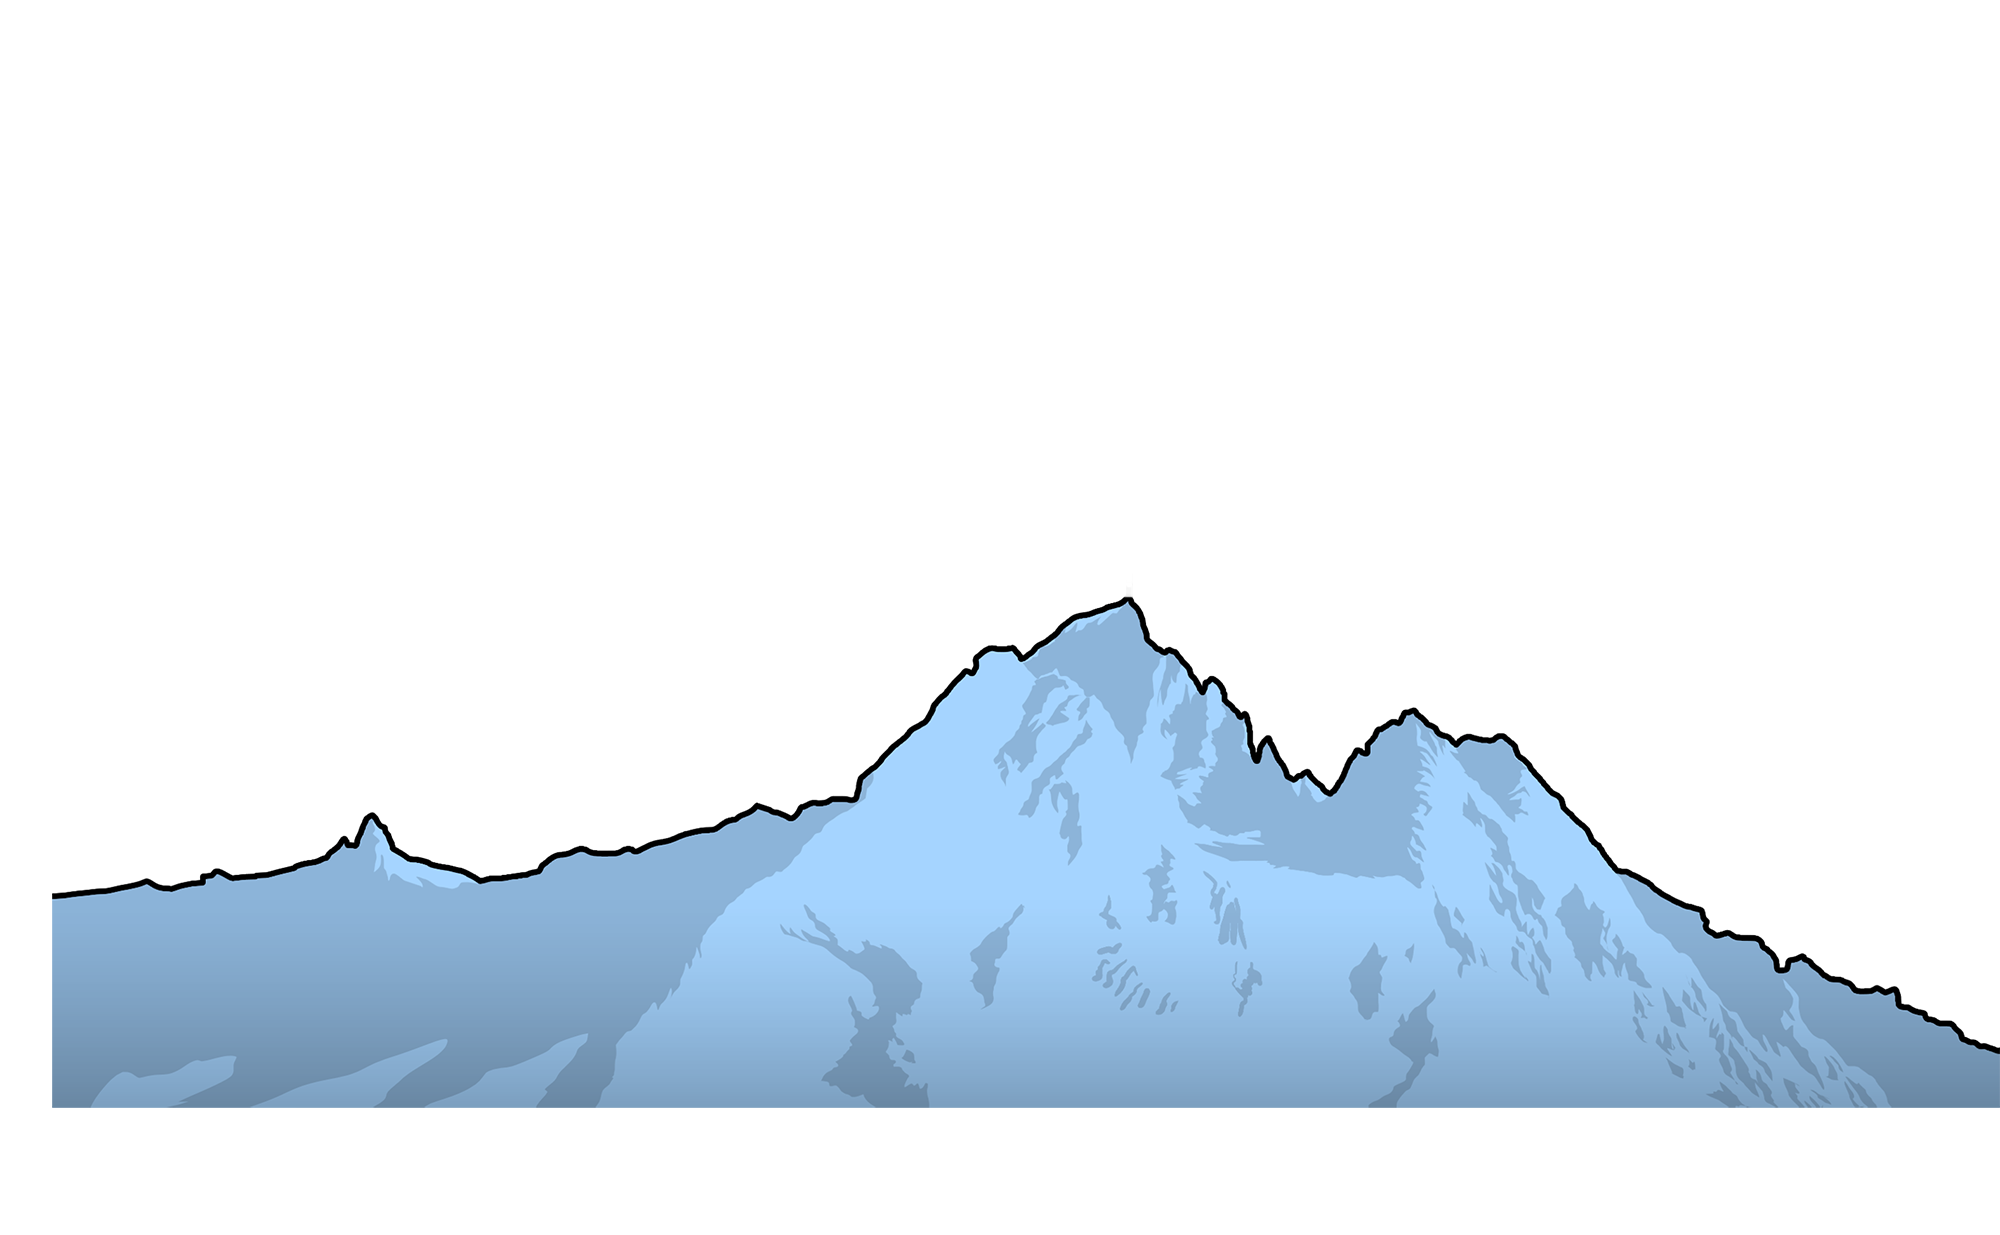 High clipart mountain landform. The deadly mountains why